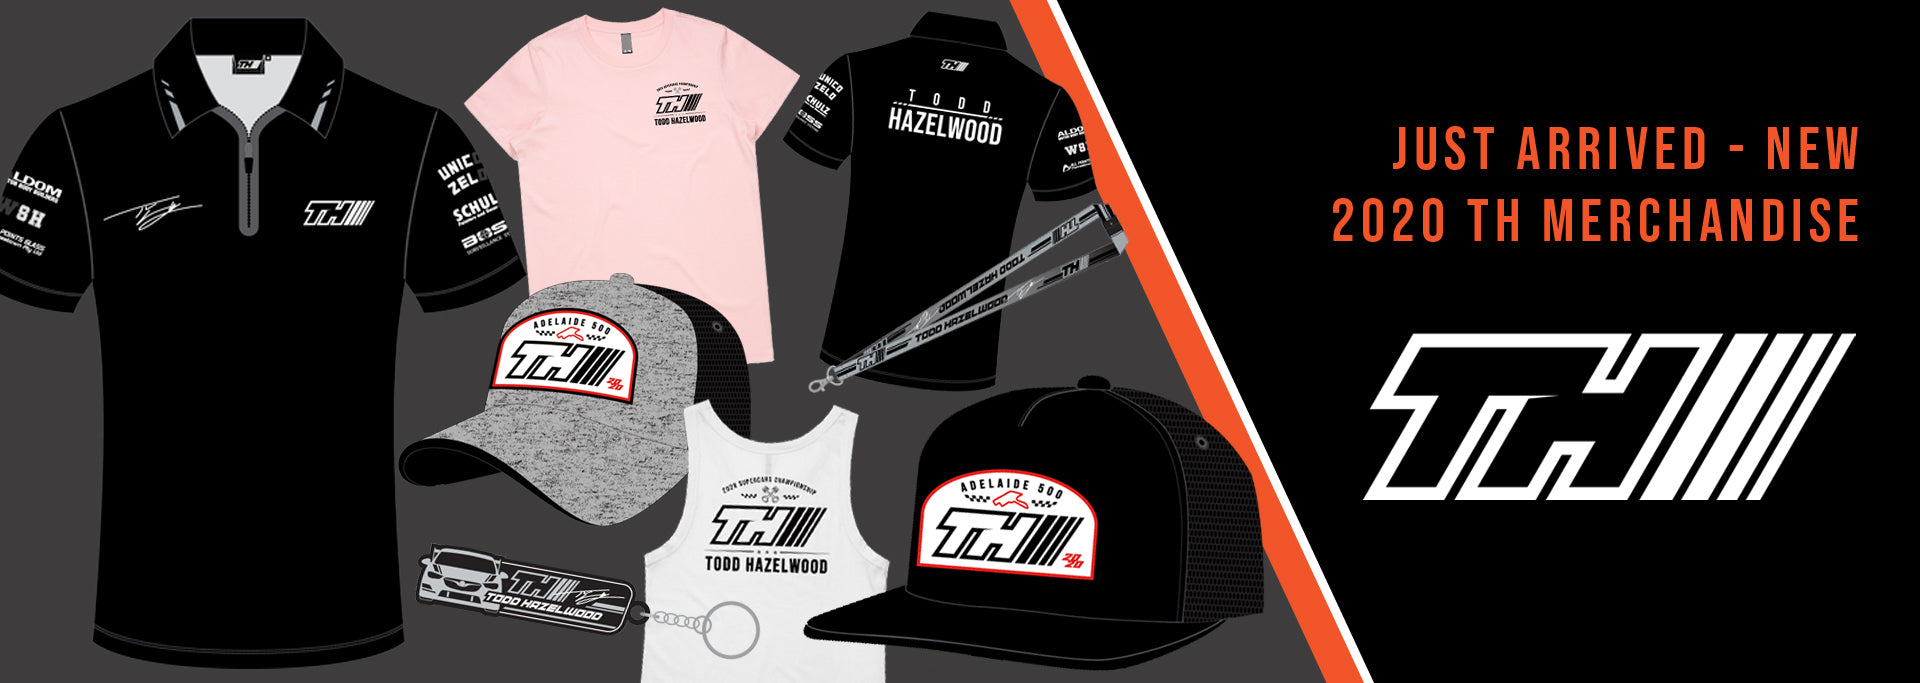 Just Arrived - New 2020 TH Merchandise